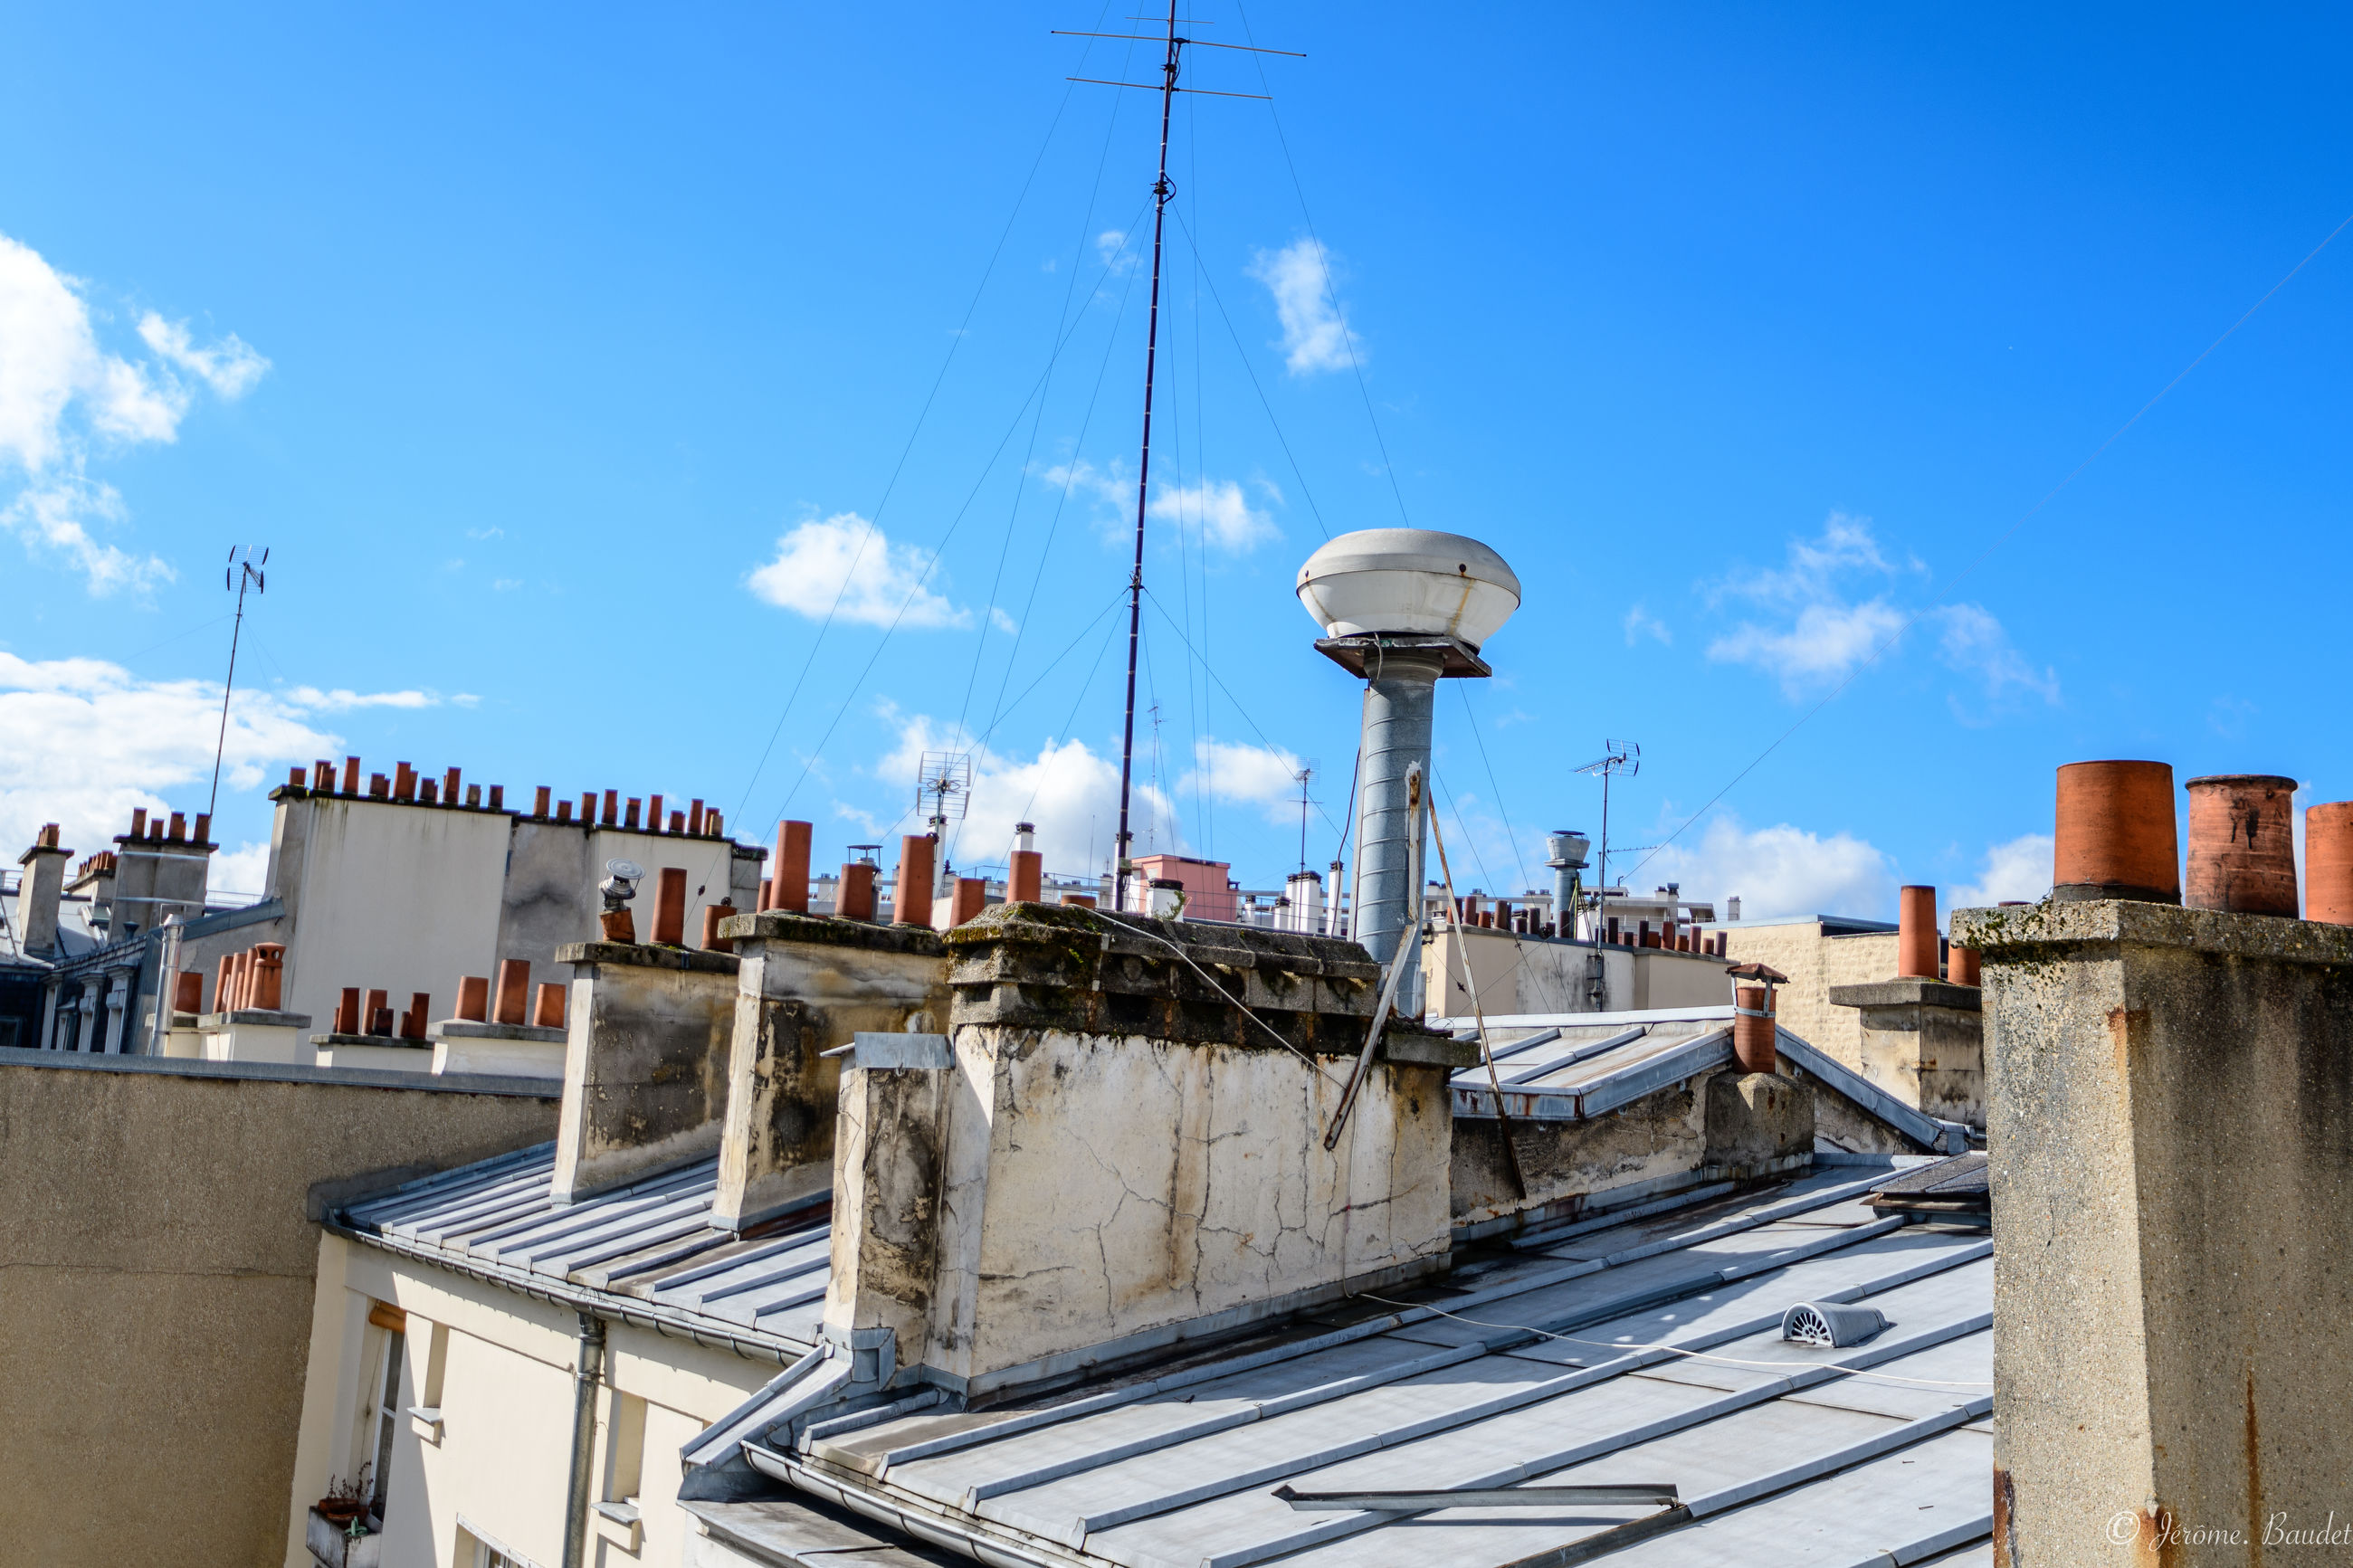 architecture, built structure, building exterior, sky, cloud - sky, day, building, nature, roof, no people, connection, sunlight, technology, antenna - aerial, blue, communication, outdoors, television aerial, city, residential district, roof tile